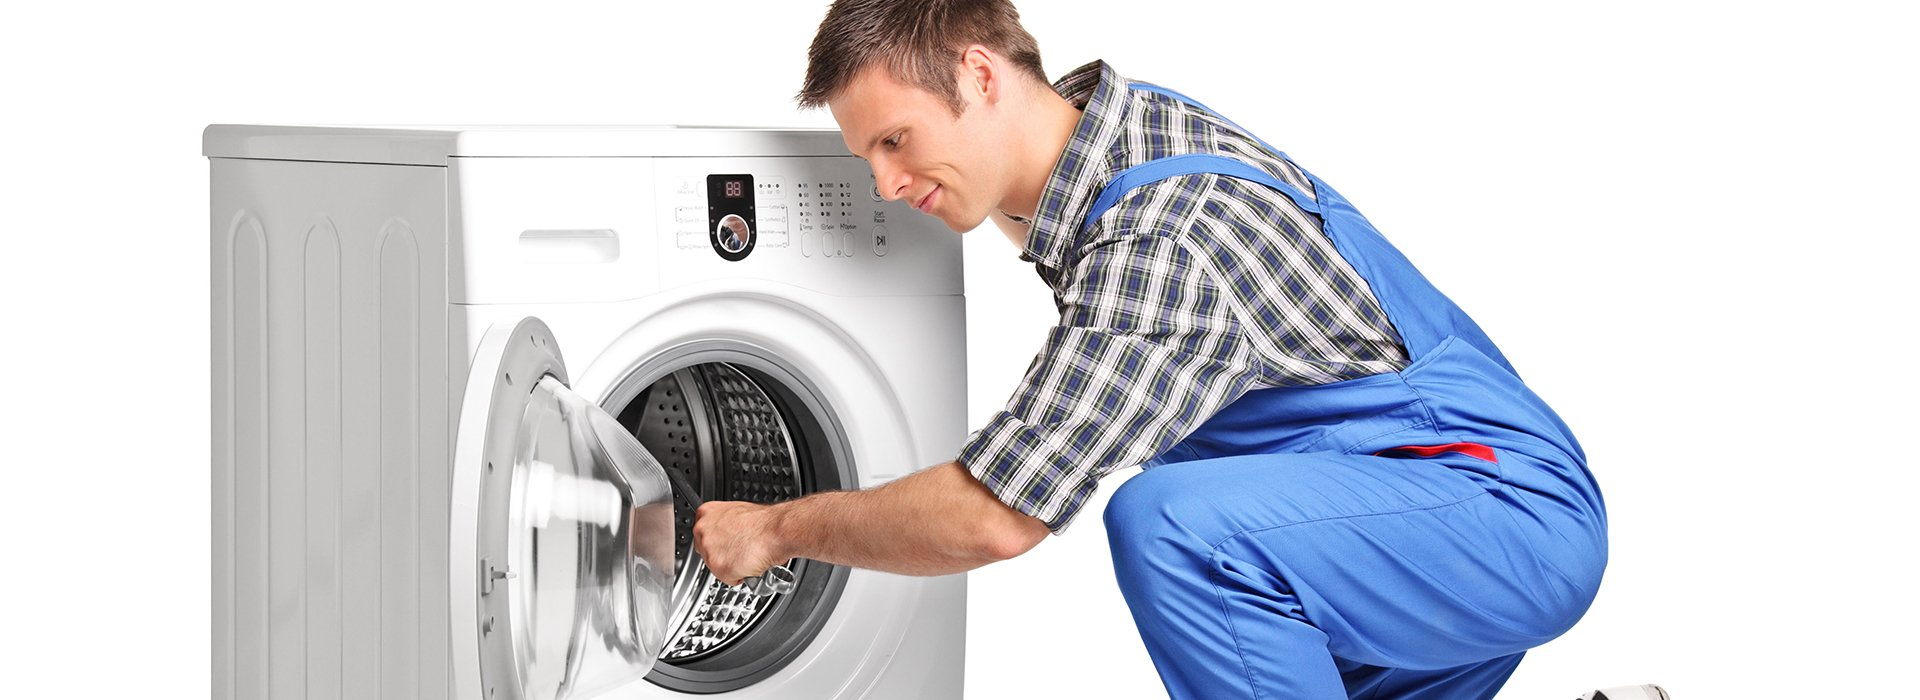 Home Appliance Service Kevin Harner Appliance Service Company Repair Enola Pa